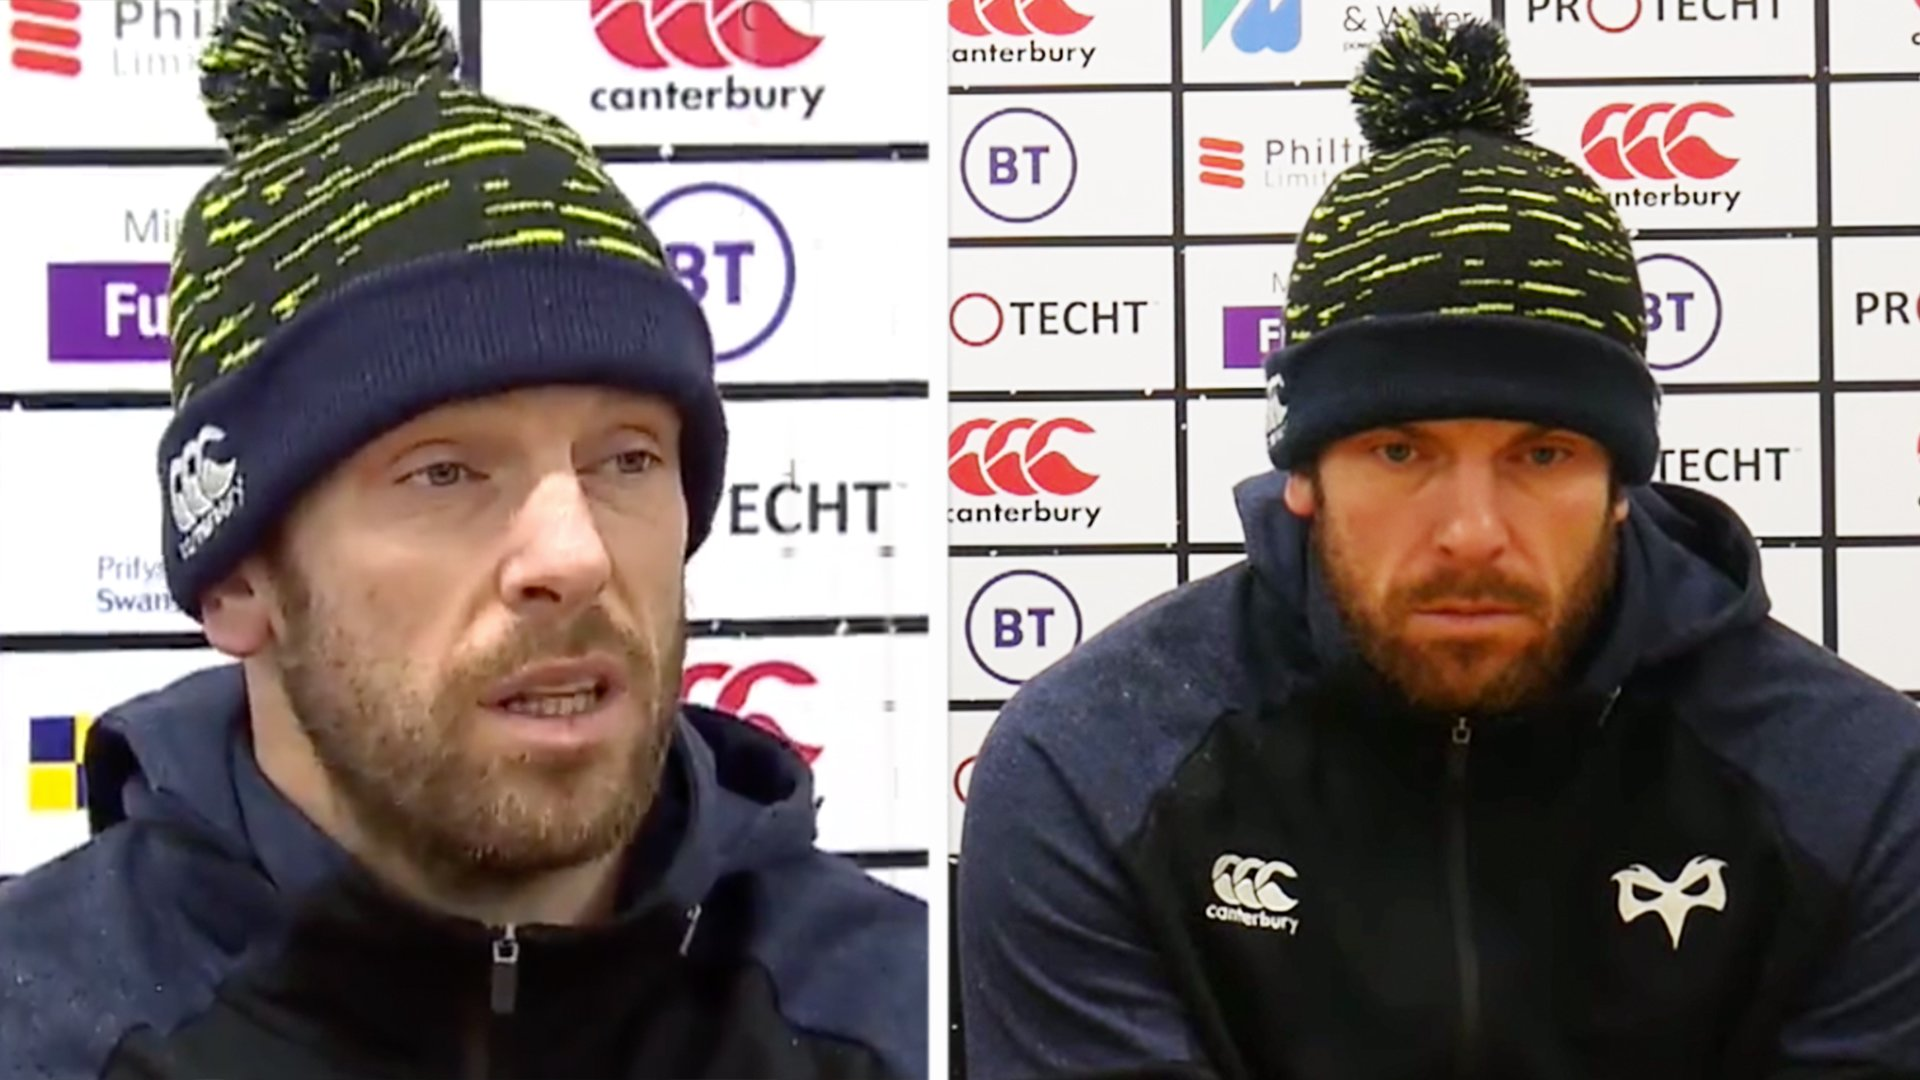 A visibly angry Alun Wyn Jones slams Ospreys management after months of chaos at the club